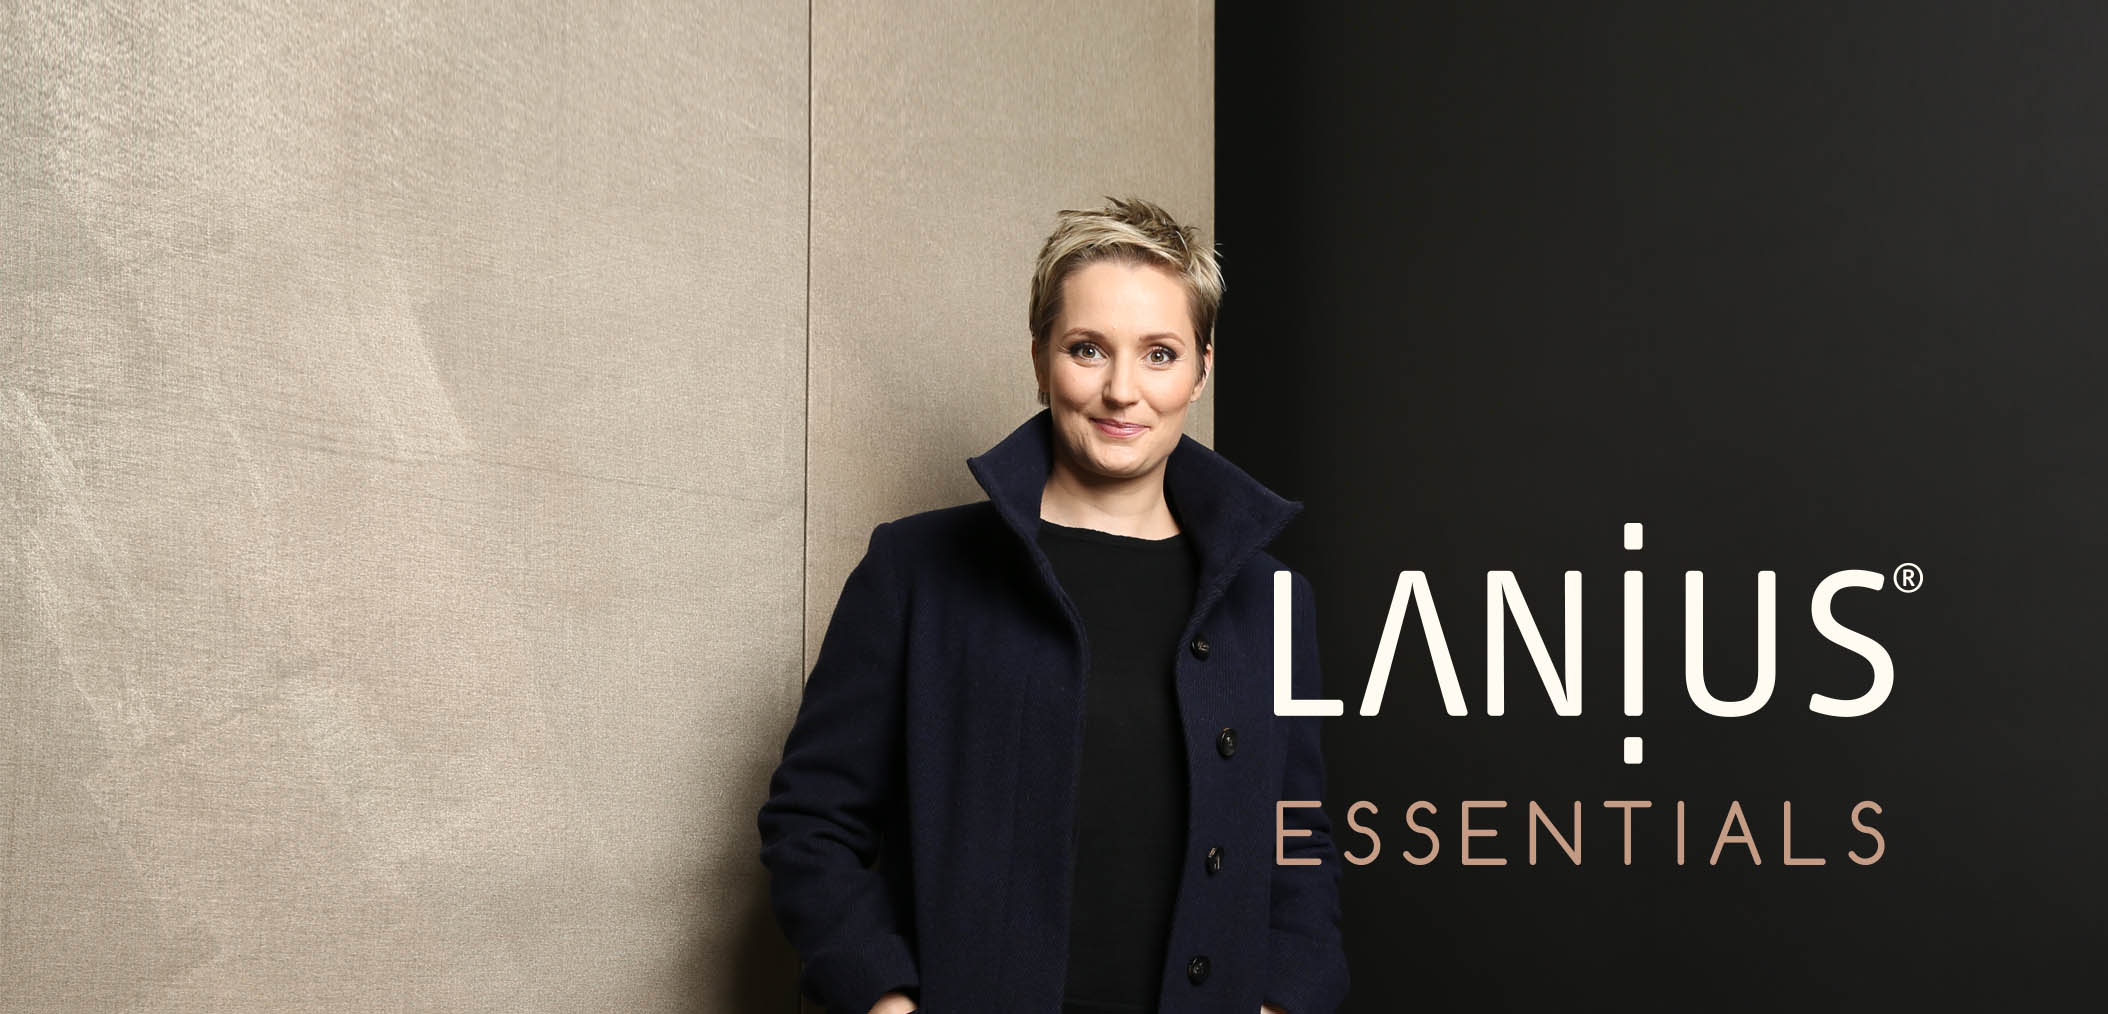 Lanius Essentials Janine Steeger